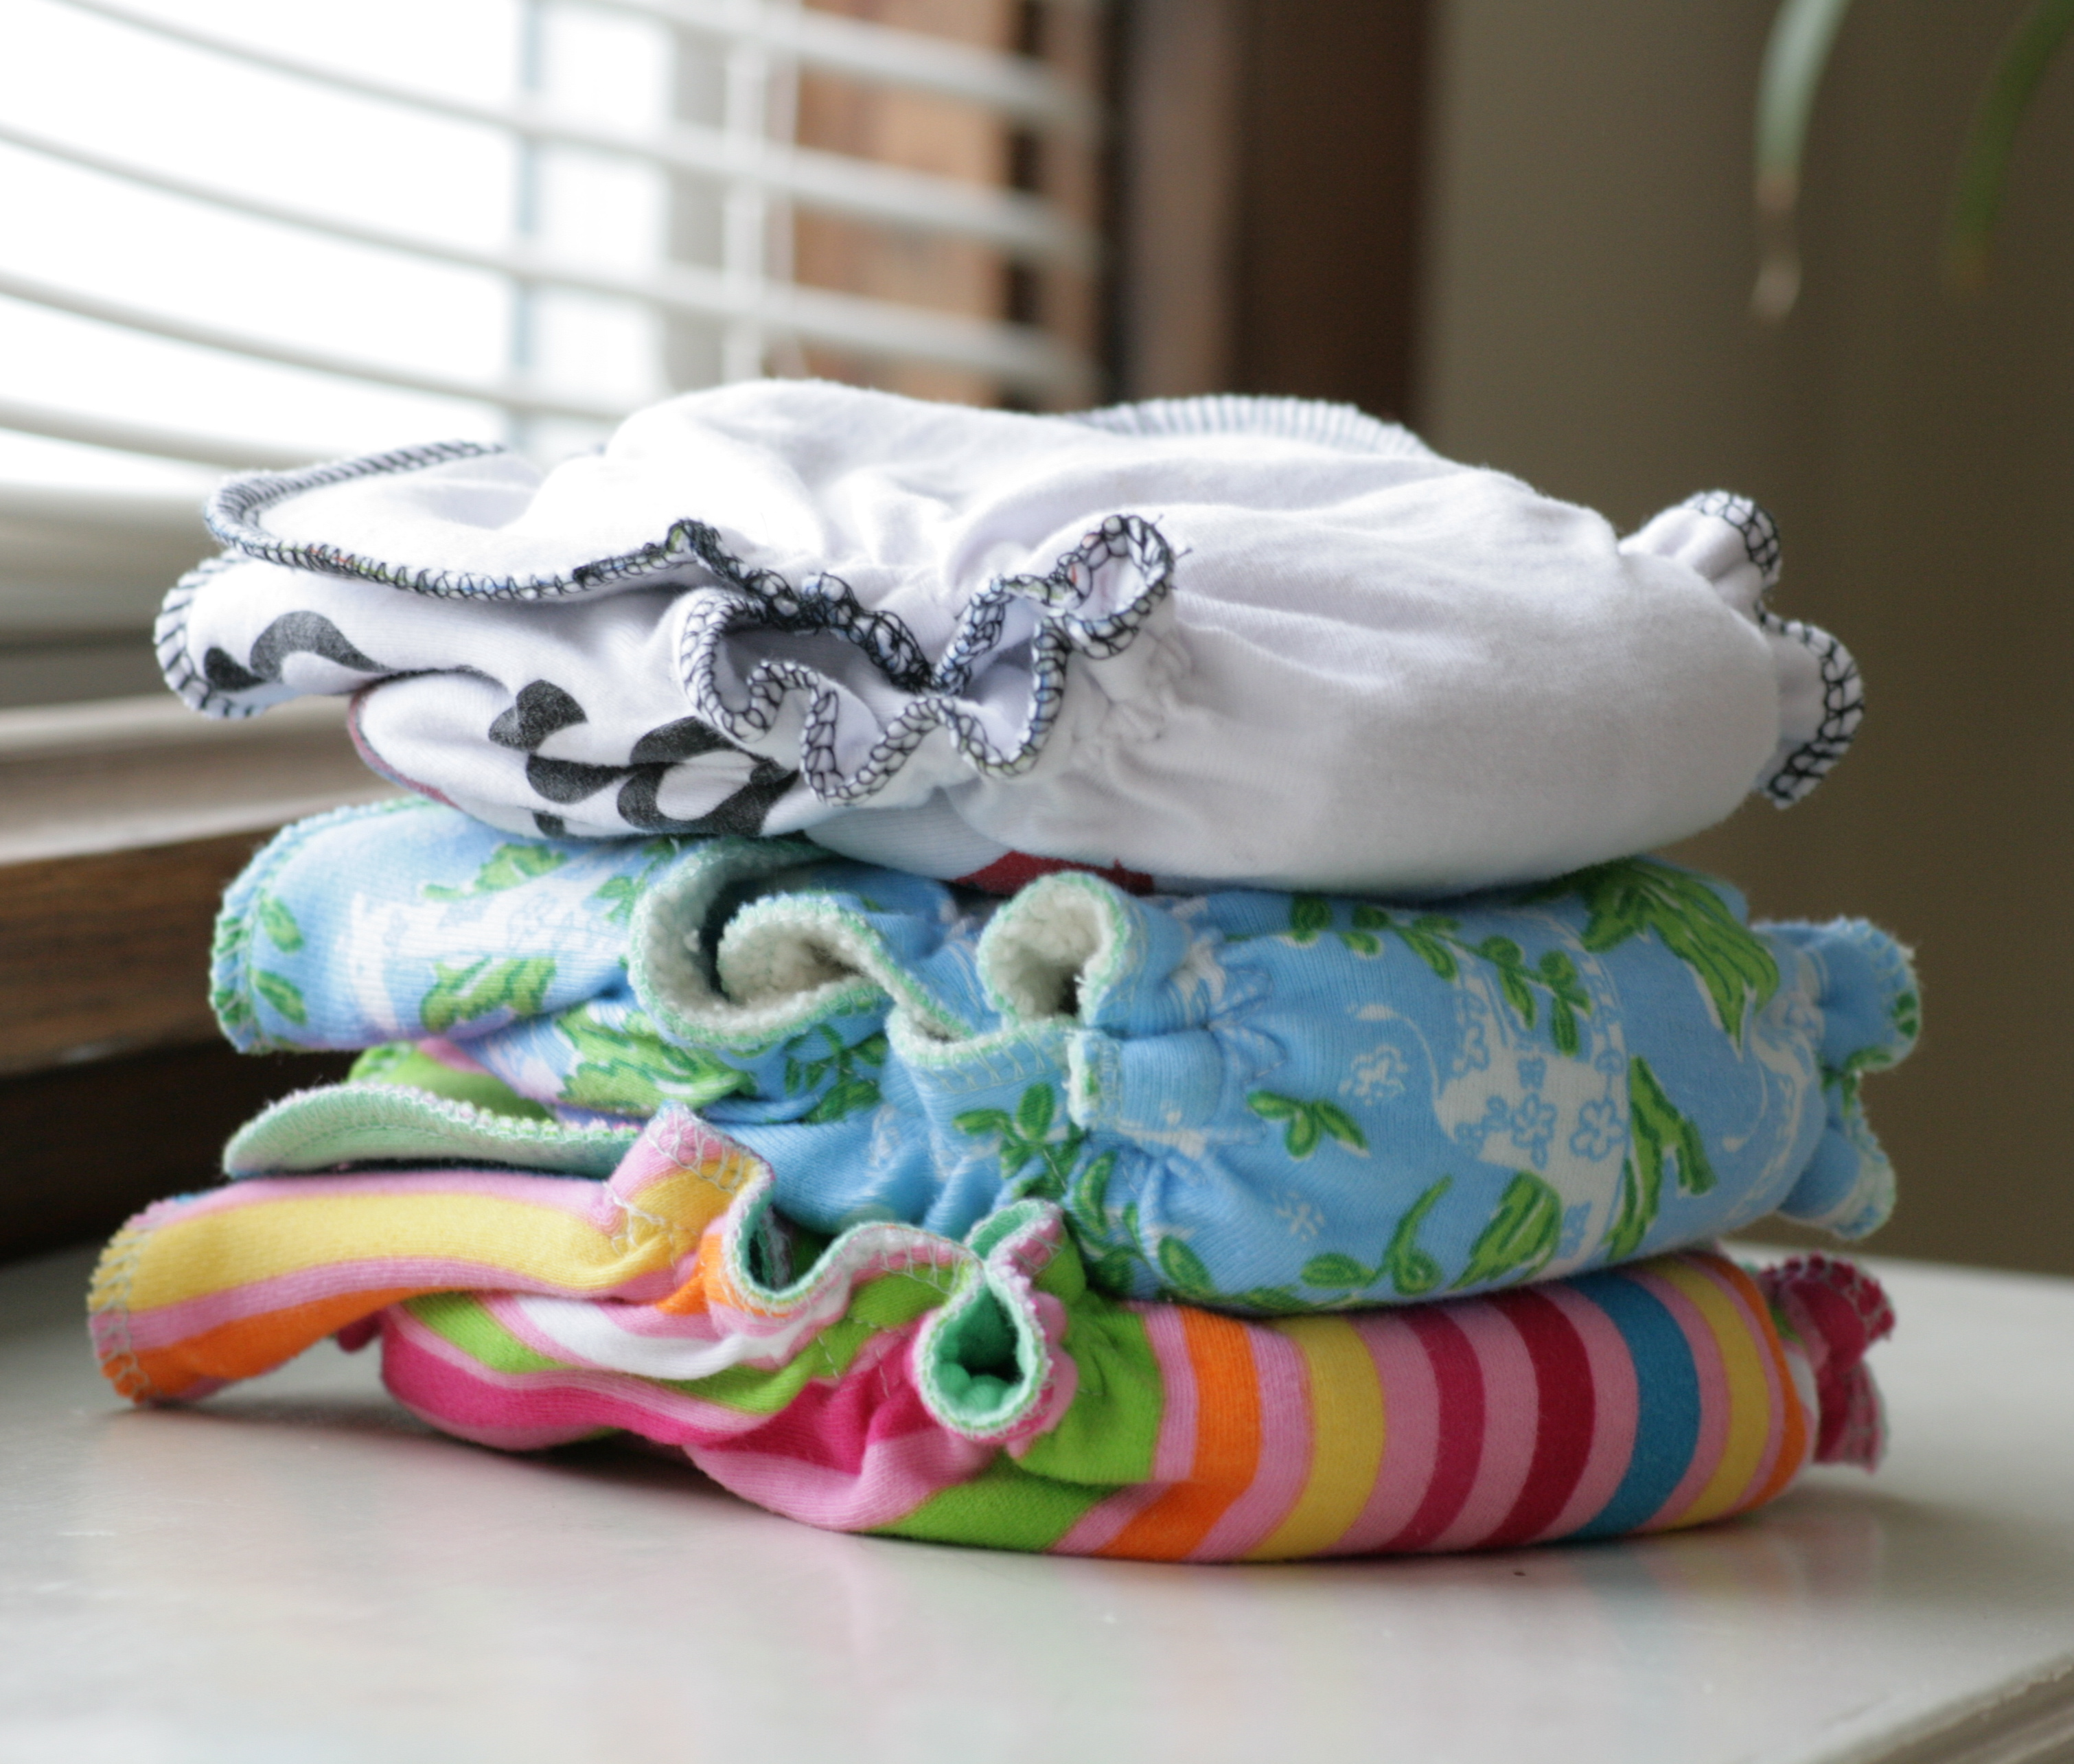 File:Stack of cloth diapers.jpg - Wikimedia Commons